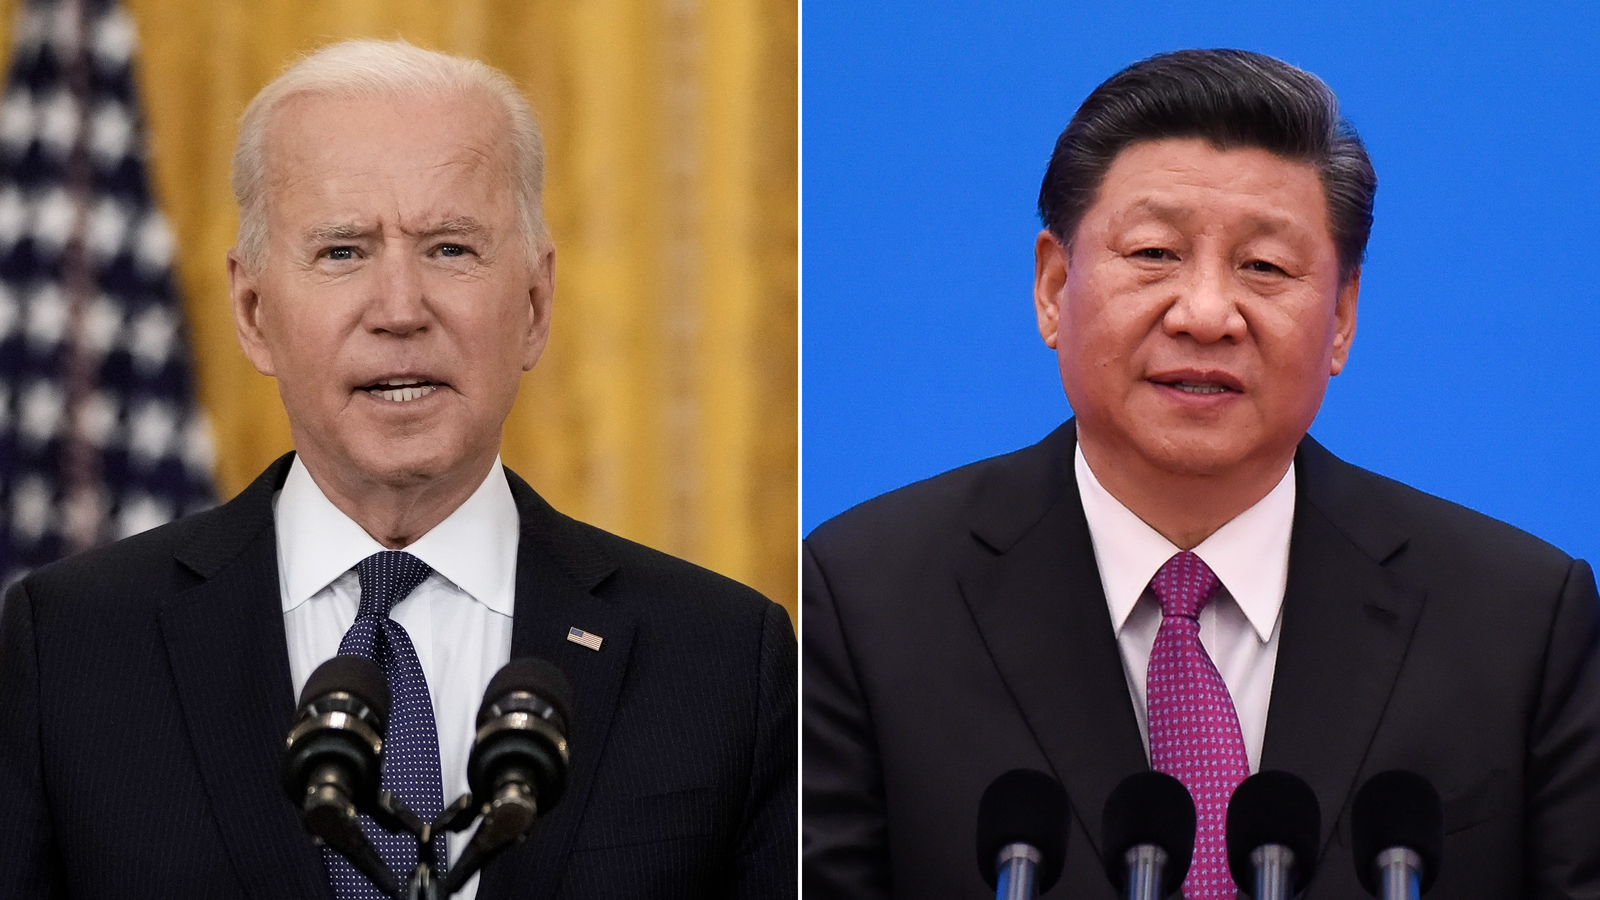 Biden aims for high-stakes meeting with Xi Jinping with Putin summit in the rearview